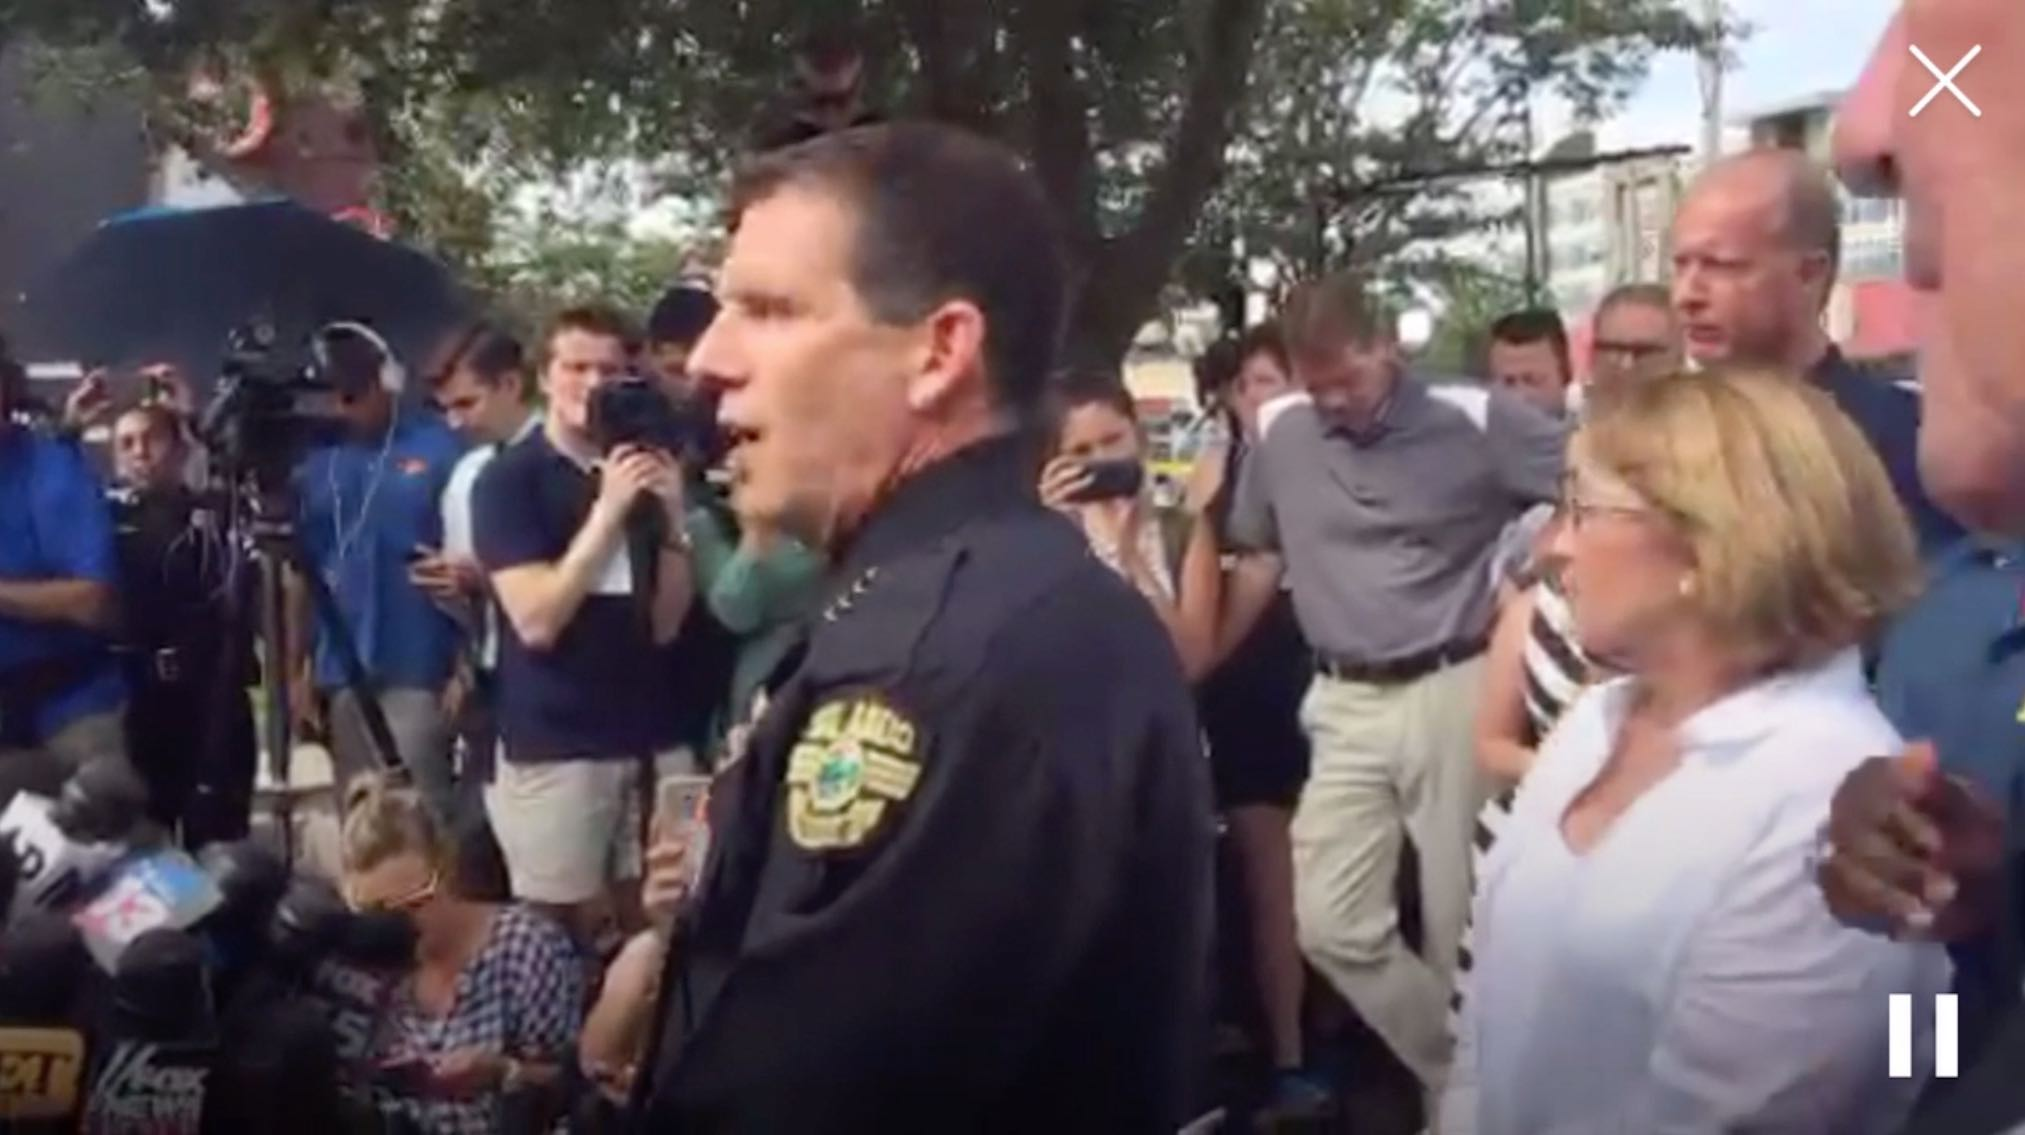 Orlando's Police Chief and Officials Hold a Media Briefing (As Seen on OPD's Periscope Channel)